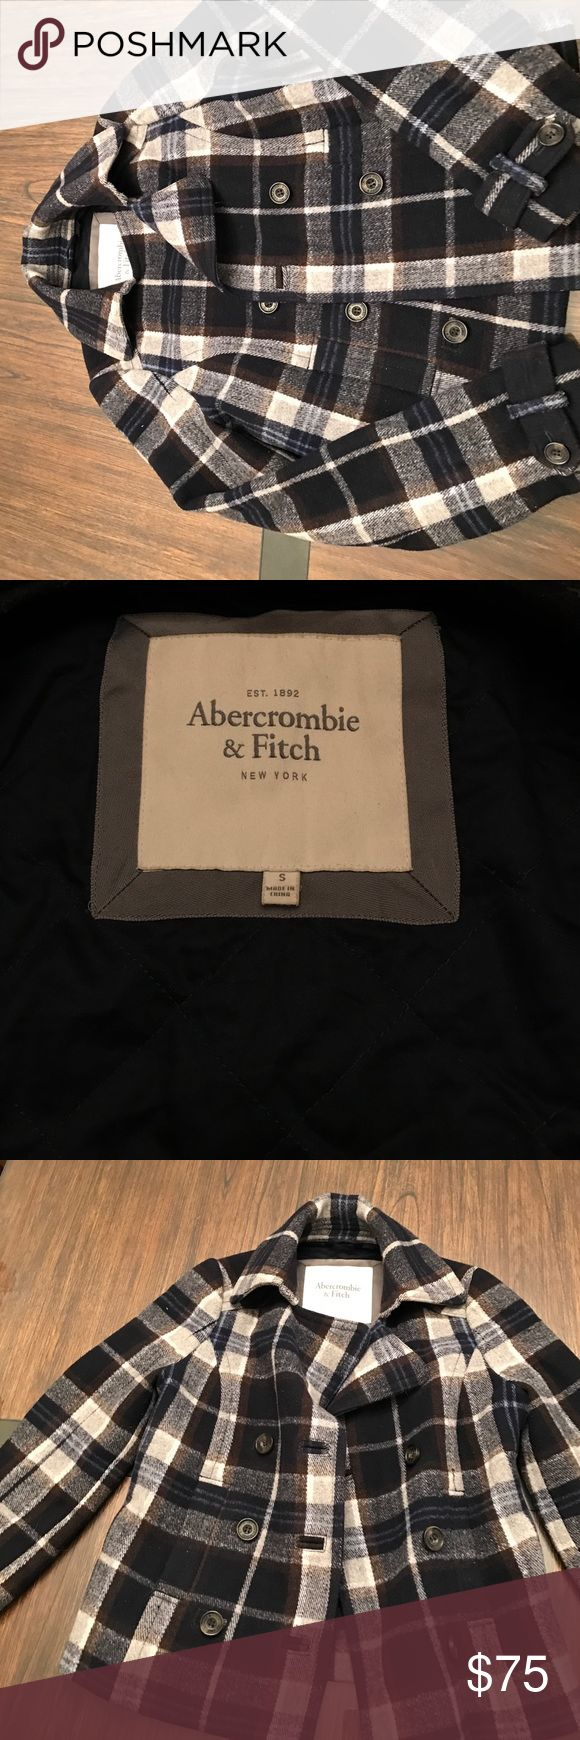 Abercrombie & Fitch Peacoat Abercrombie & Fitch women's peacoat size small. Excellent condition. Abercrombie & Fitch Jackets & Coats Pea Coats